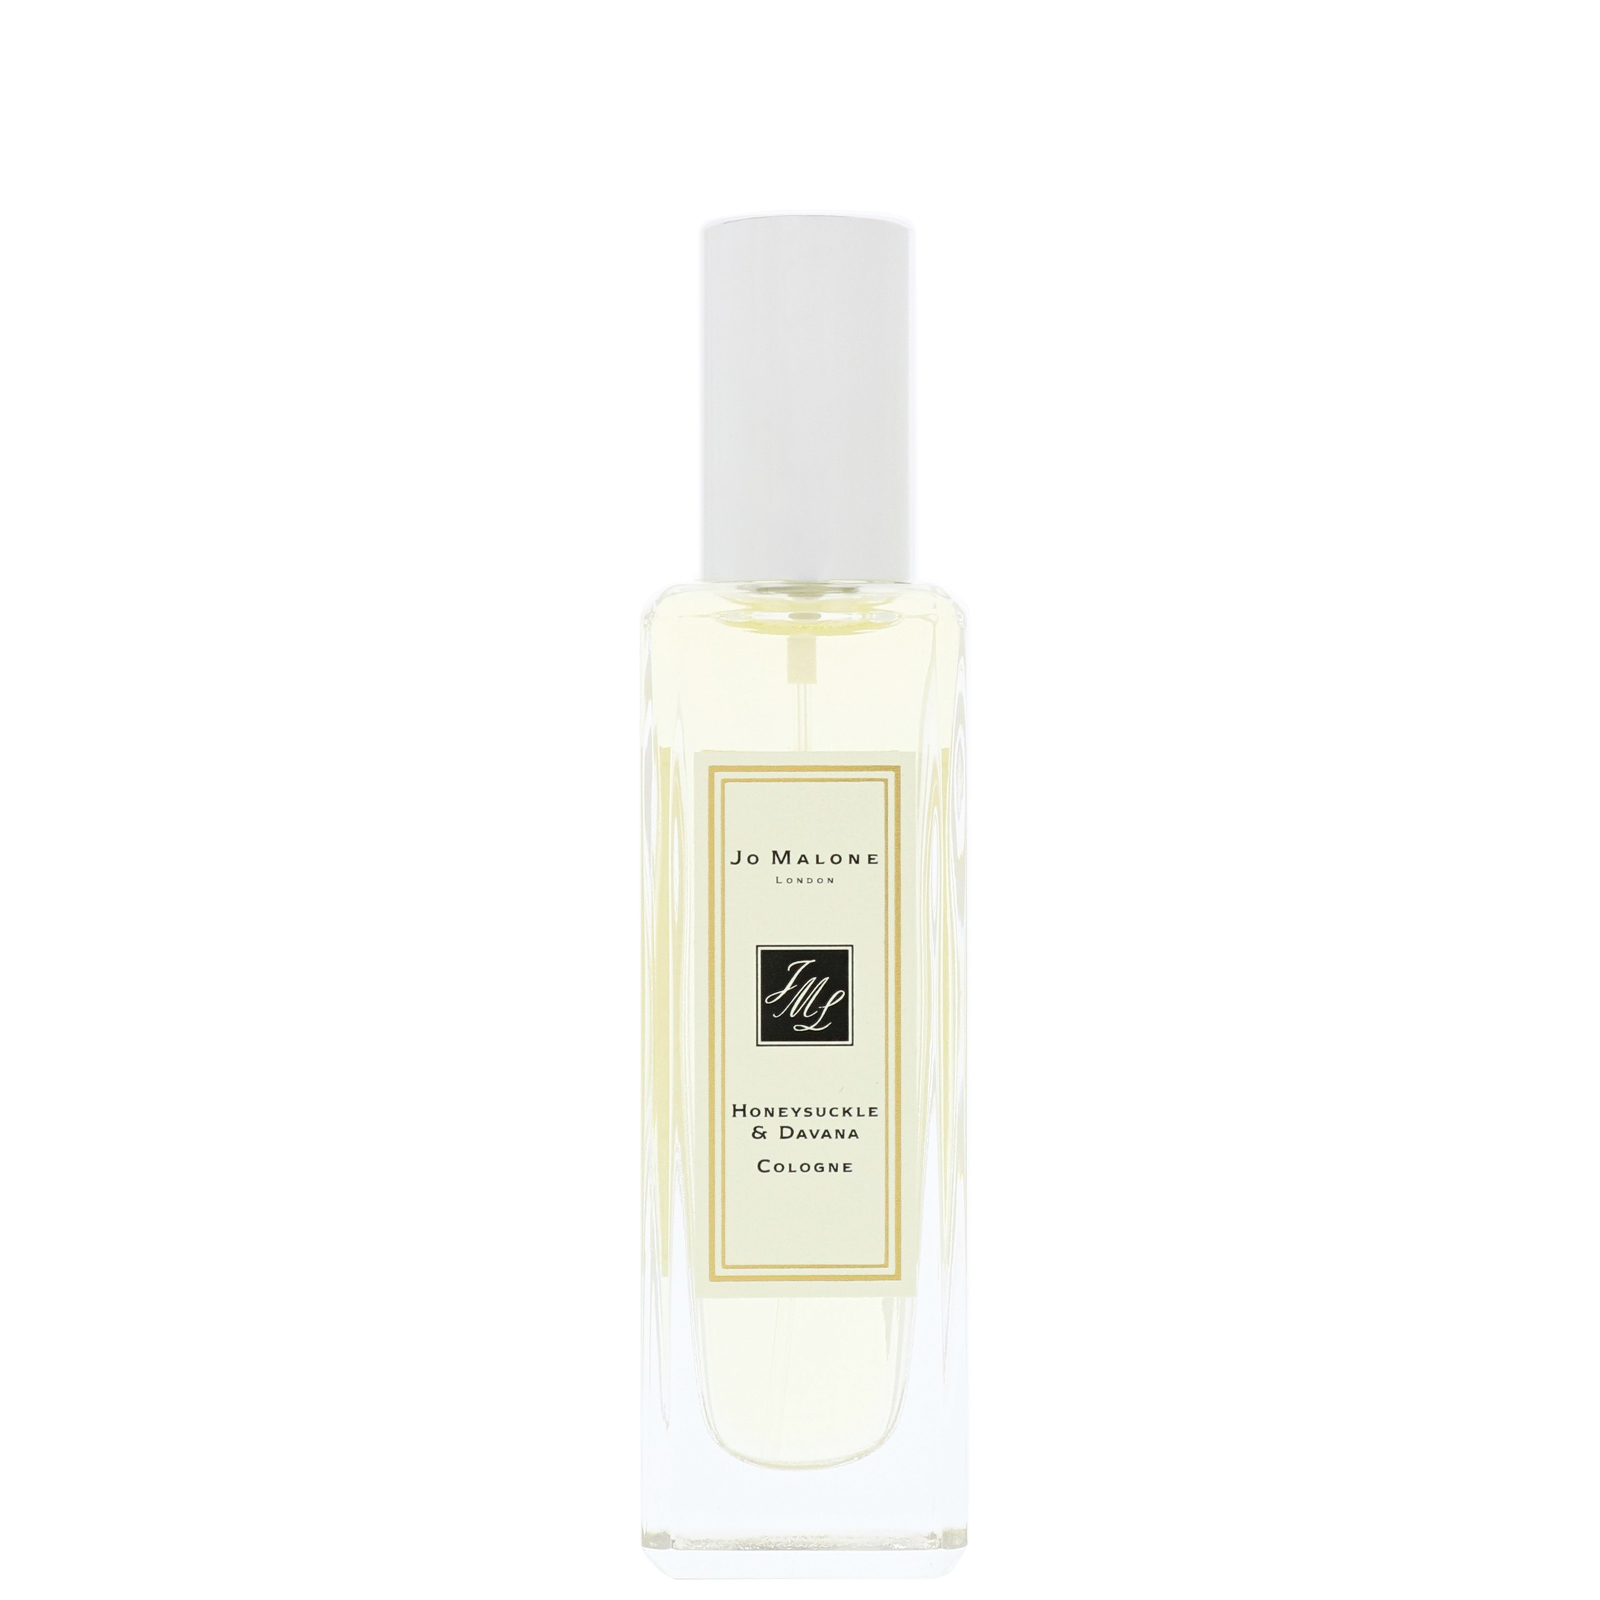 Jo Malone Honeysuckle & Davana Eau de Cologne Spray 30ml